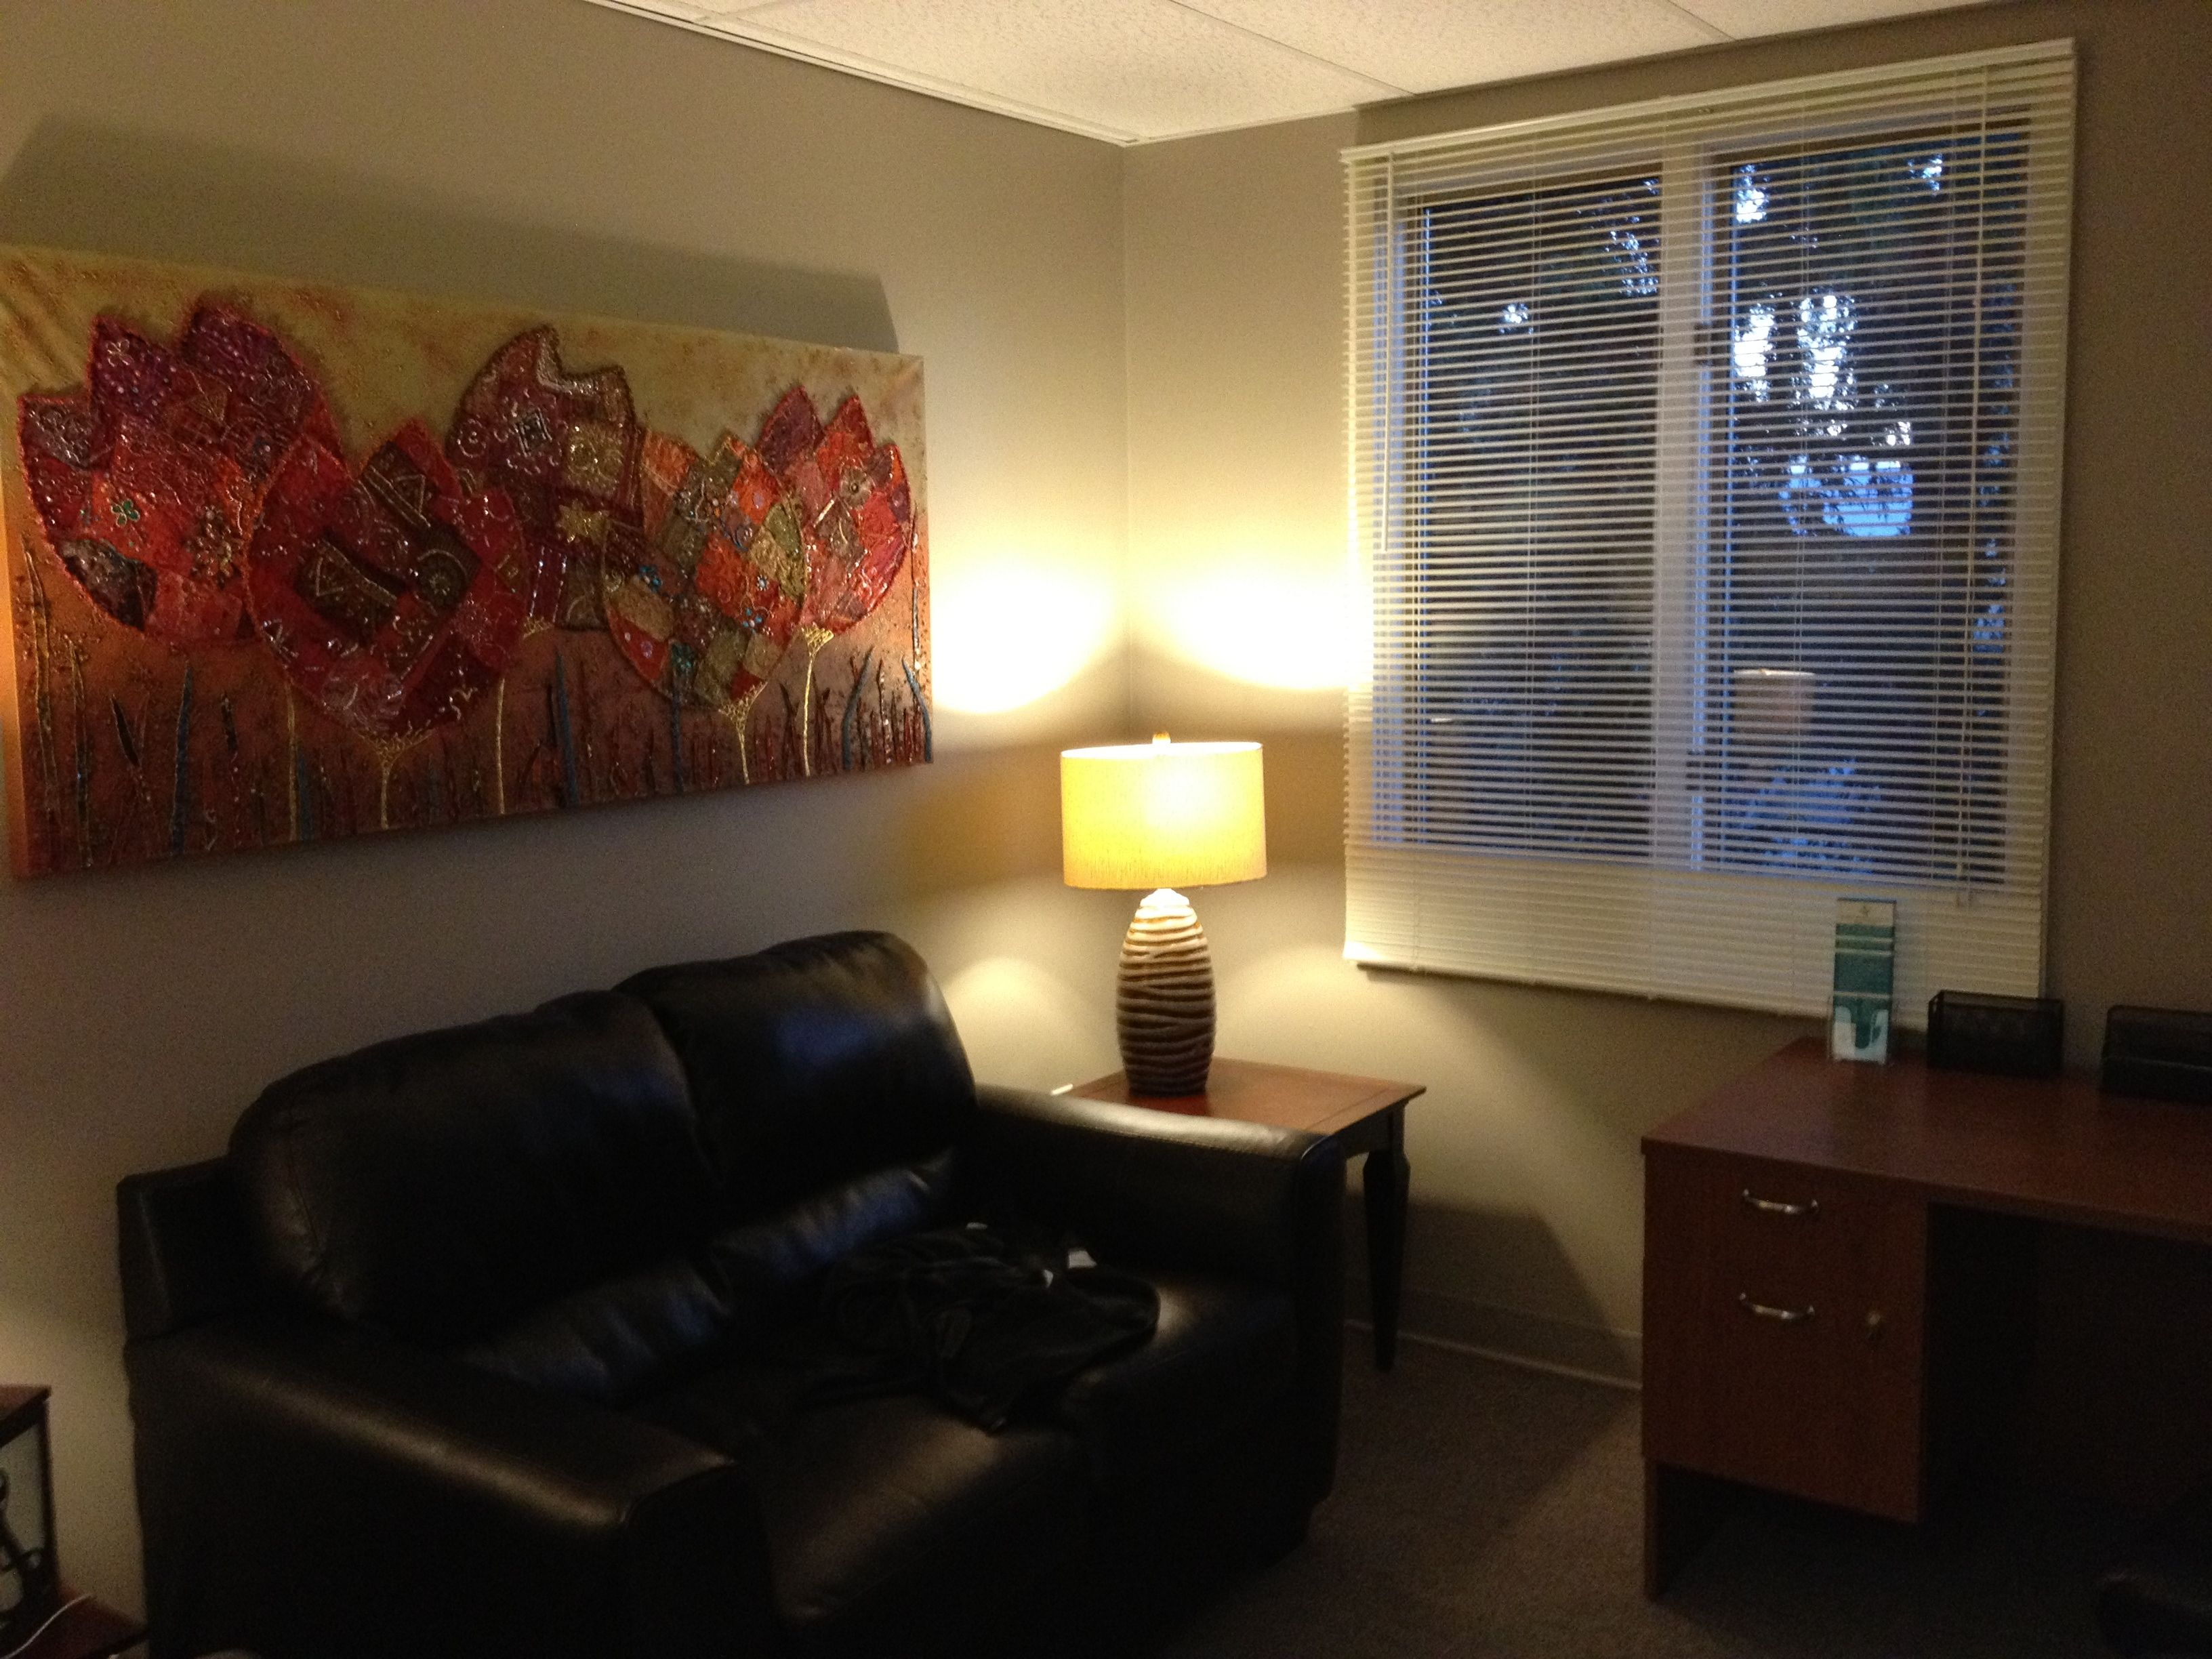 Therapy Office Decor Relationship Counseling Psychotherapy San Francisco Jeremi Ross